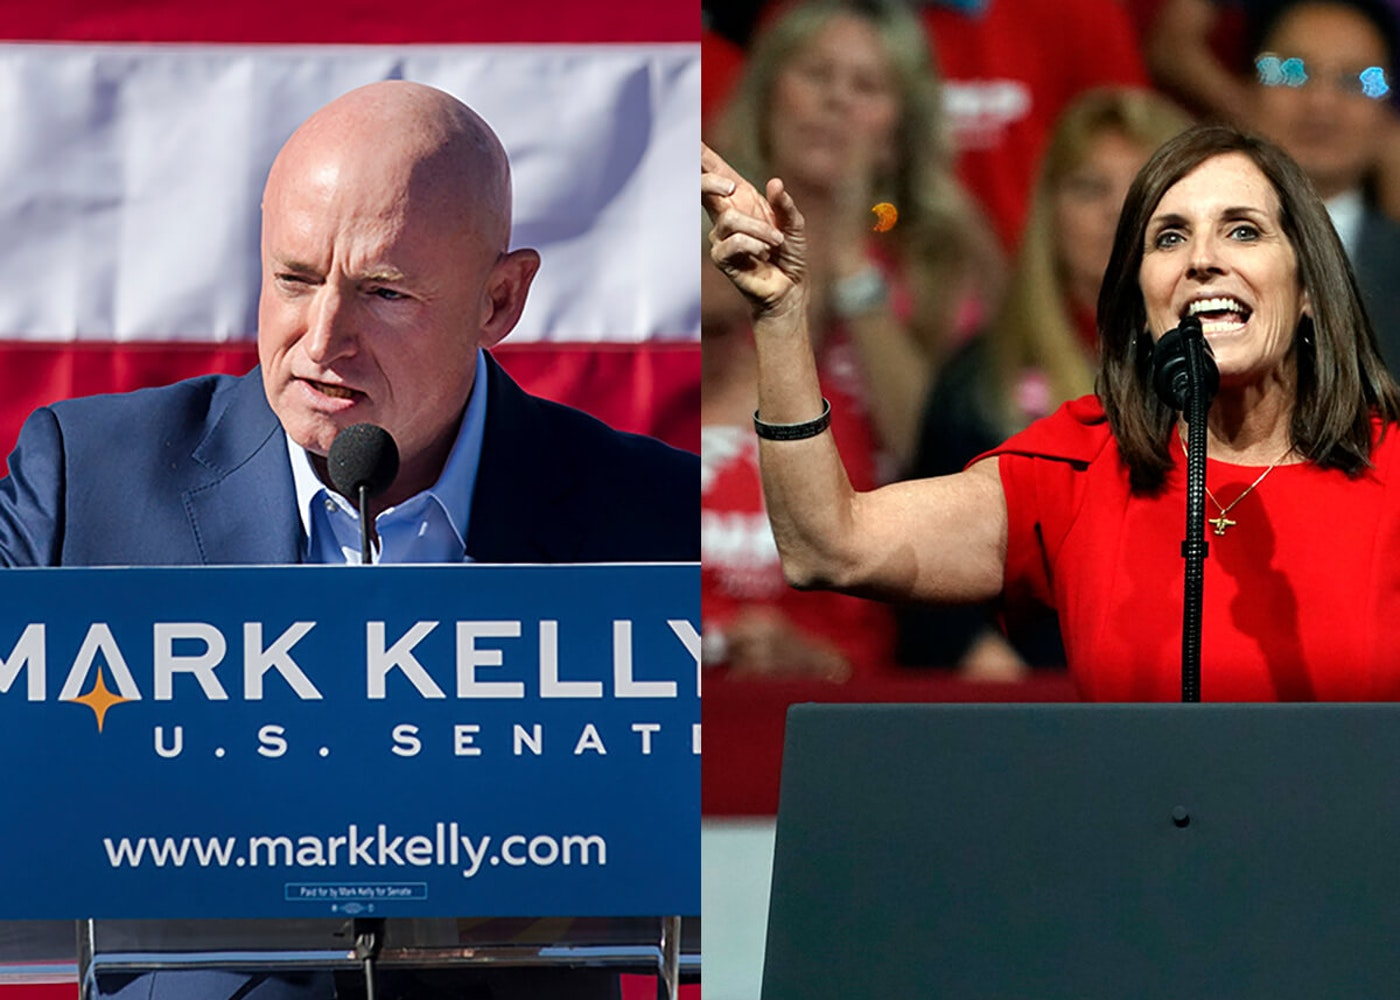 Mrk Kalley and Martha McSally speaking at podiums